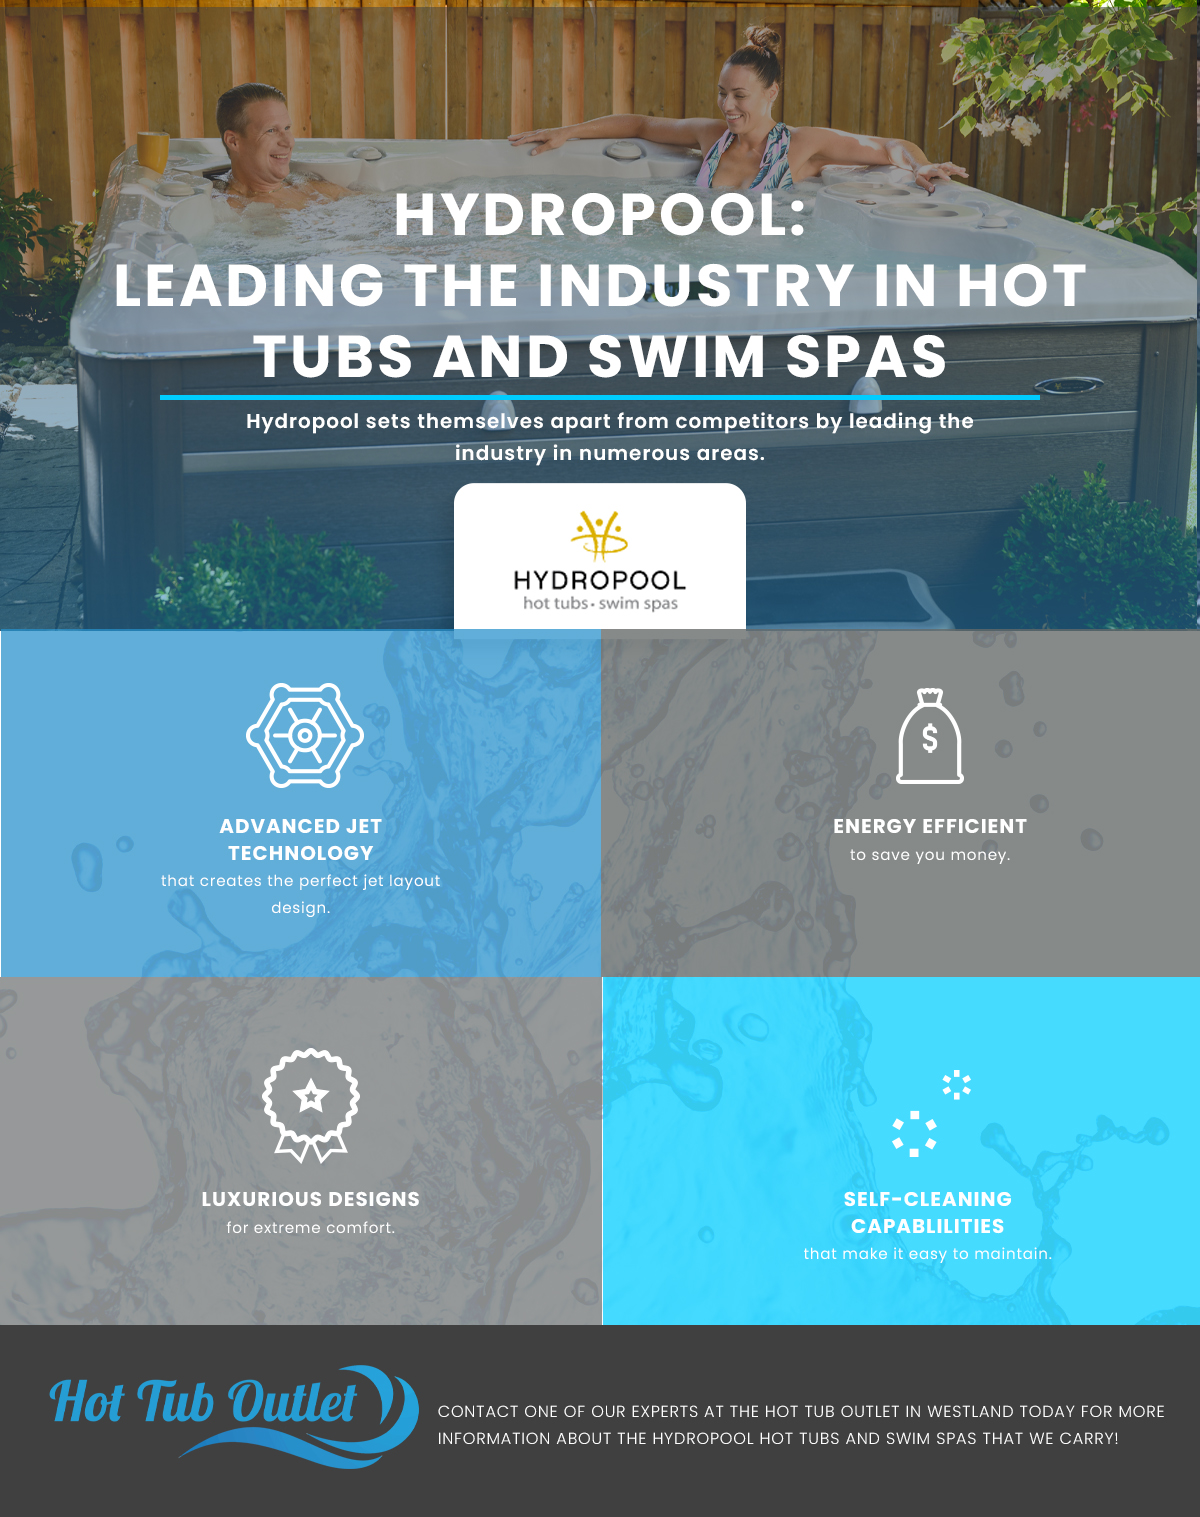 Hydropool: Leading The Industry In Hot Tubs And Swim Spas